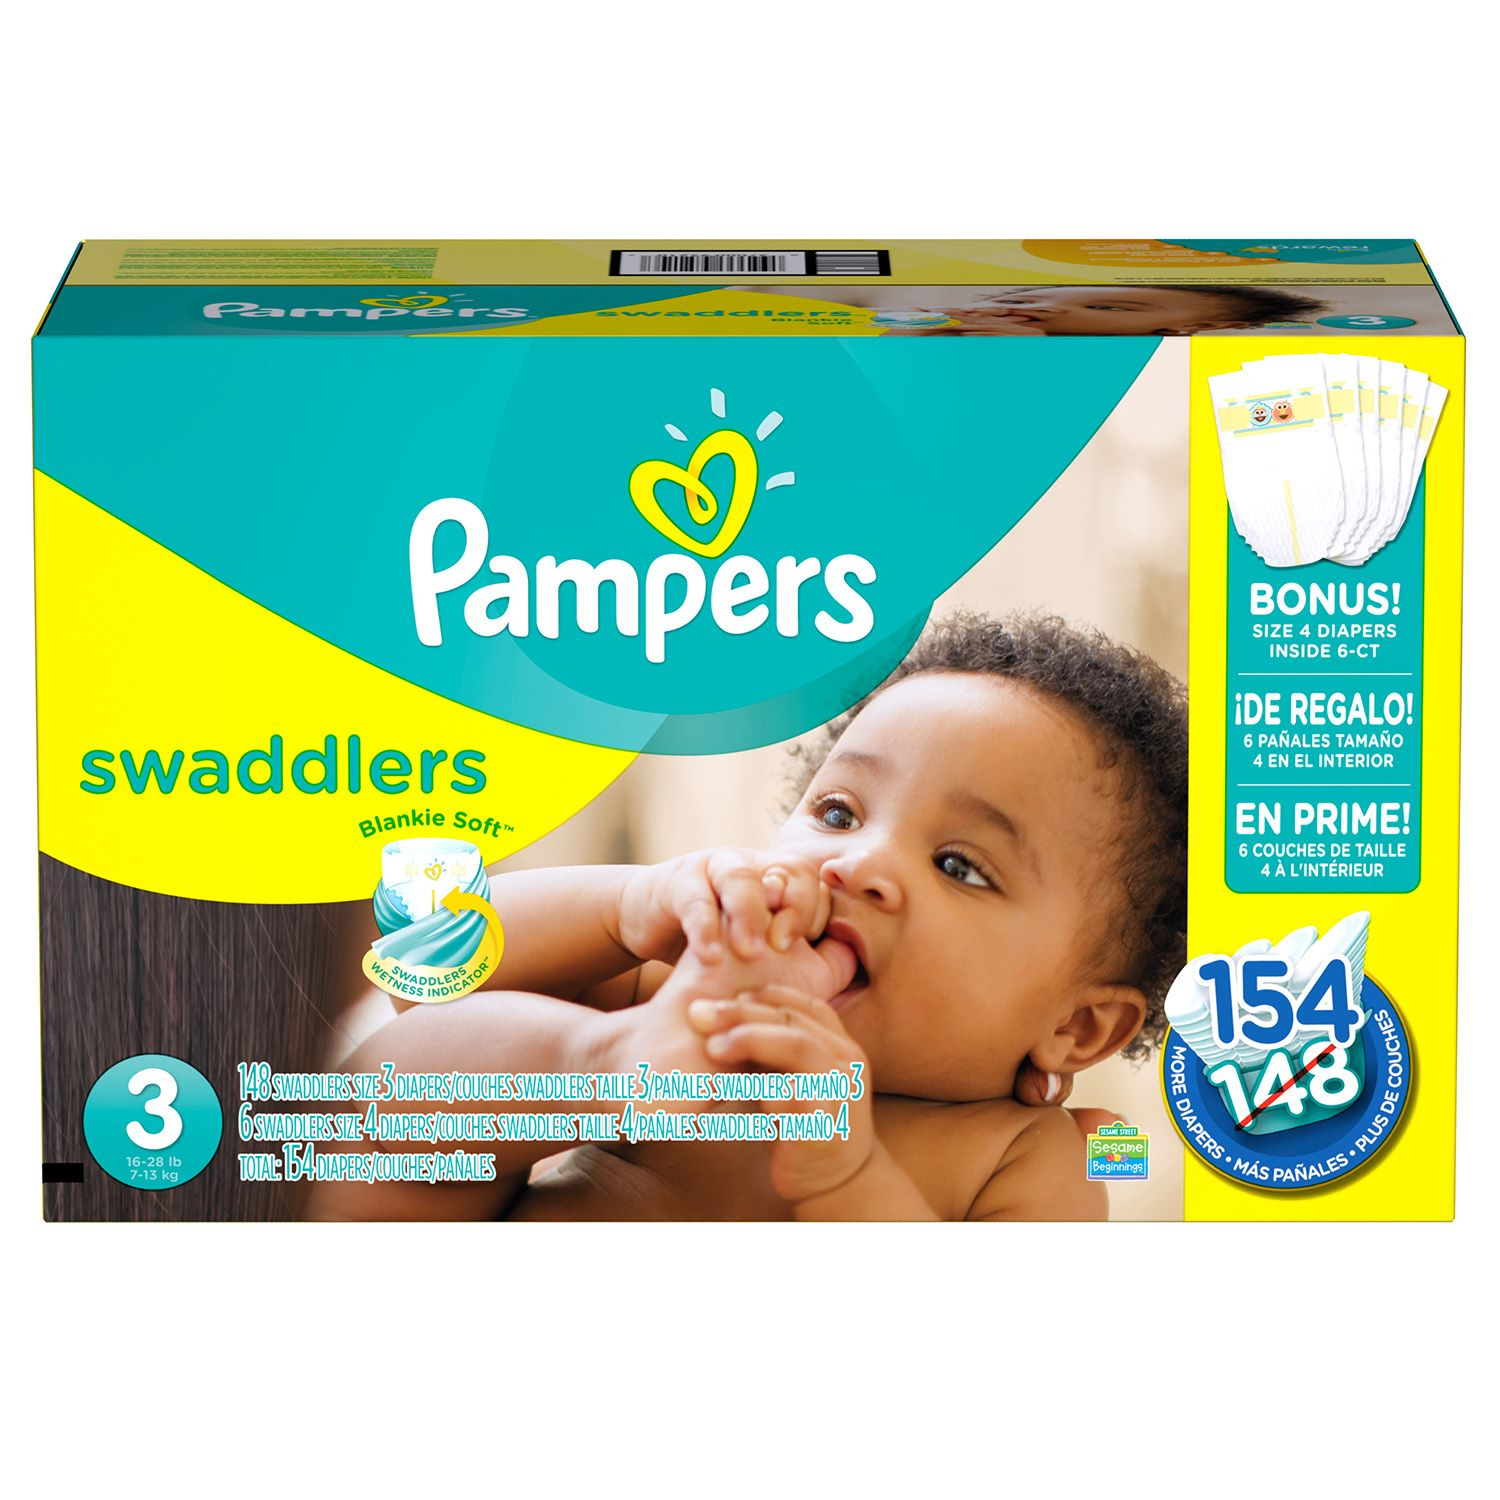 Procter & Gamble Pampers Swaddlers Diapers (Size 3, 154 ct.)